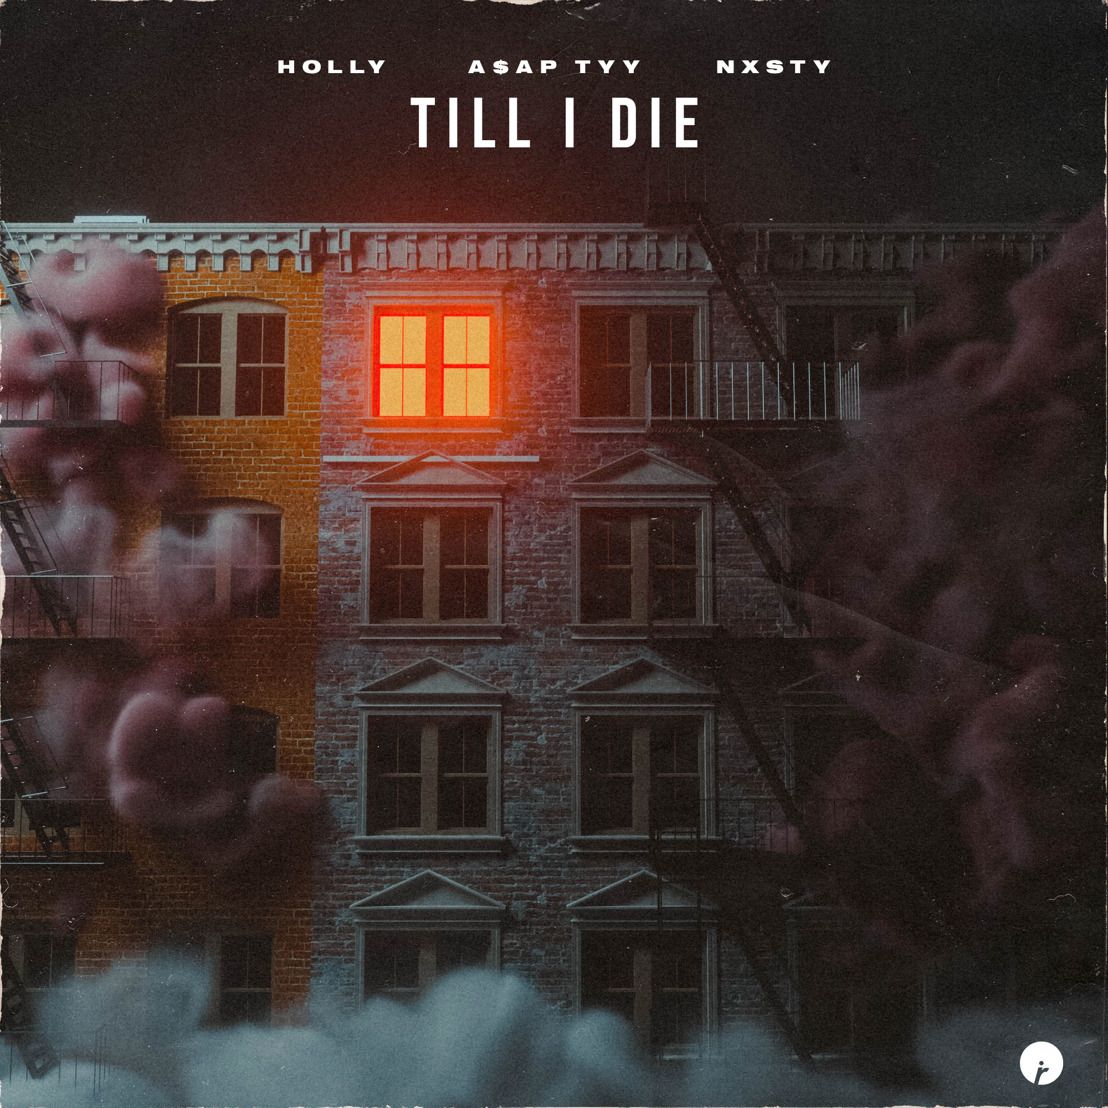 Holly Unleashes New Collab with A$AP TyY & NXSTY: Till I Die